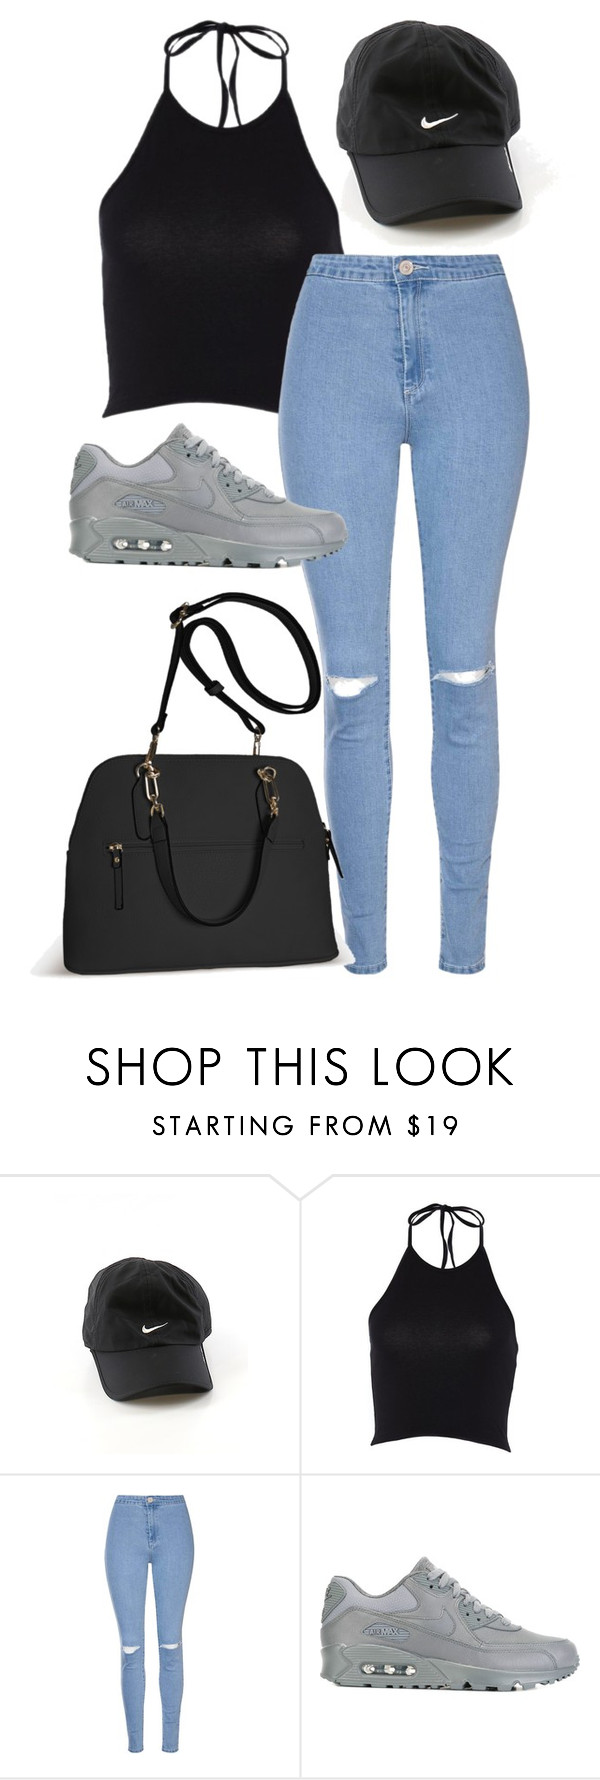 """Untitled #255"" by xkayana-jacksonx ❤ liked on Polyvore featuring NIKE, Glamorous and Avenue"